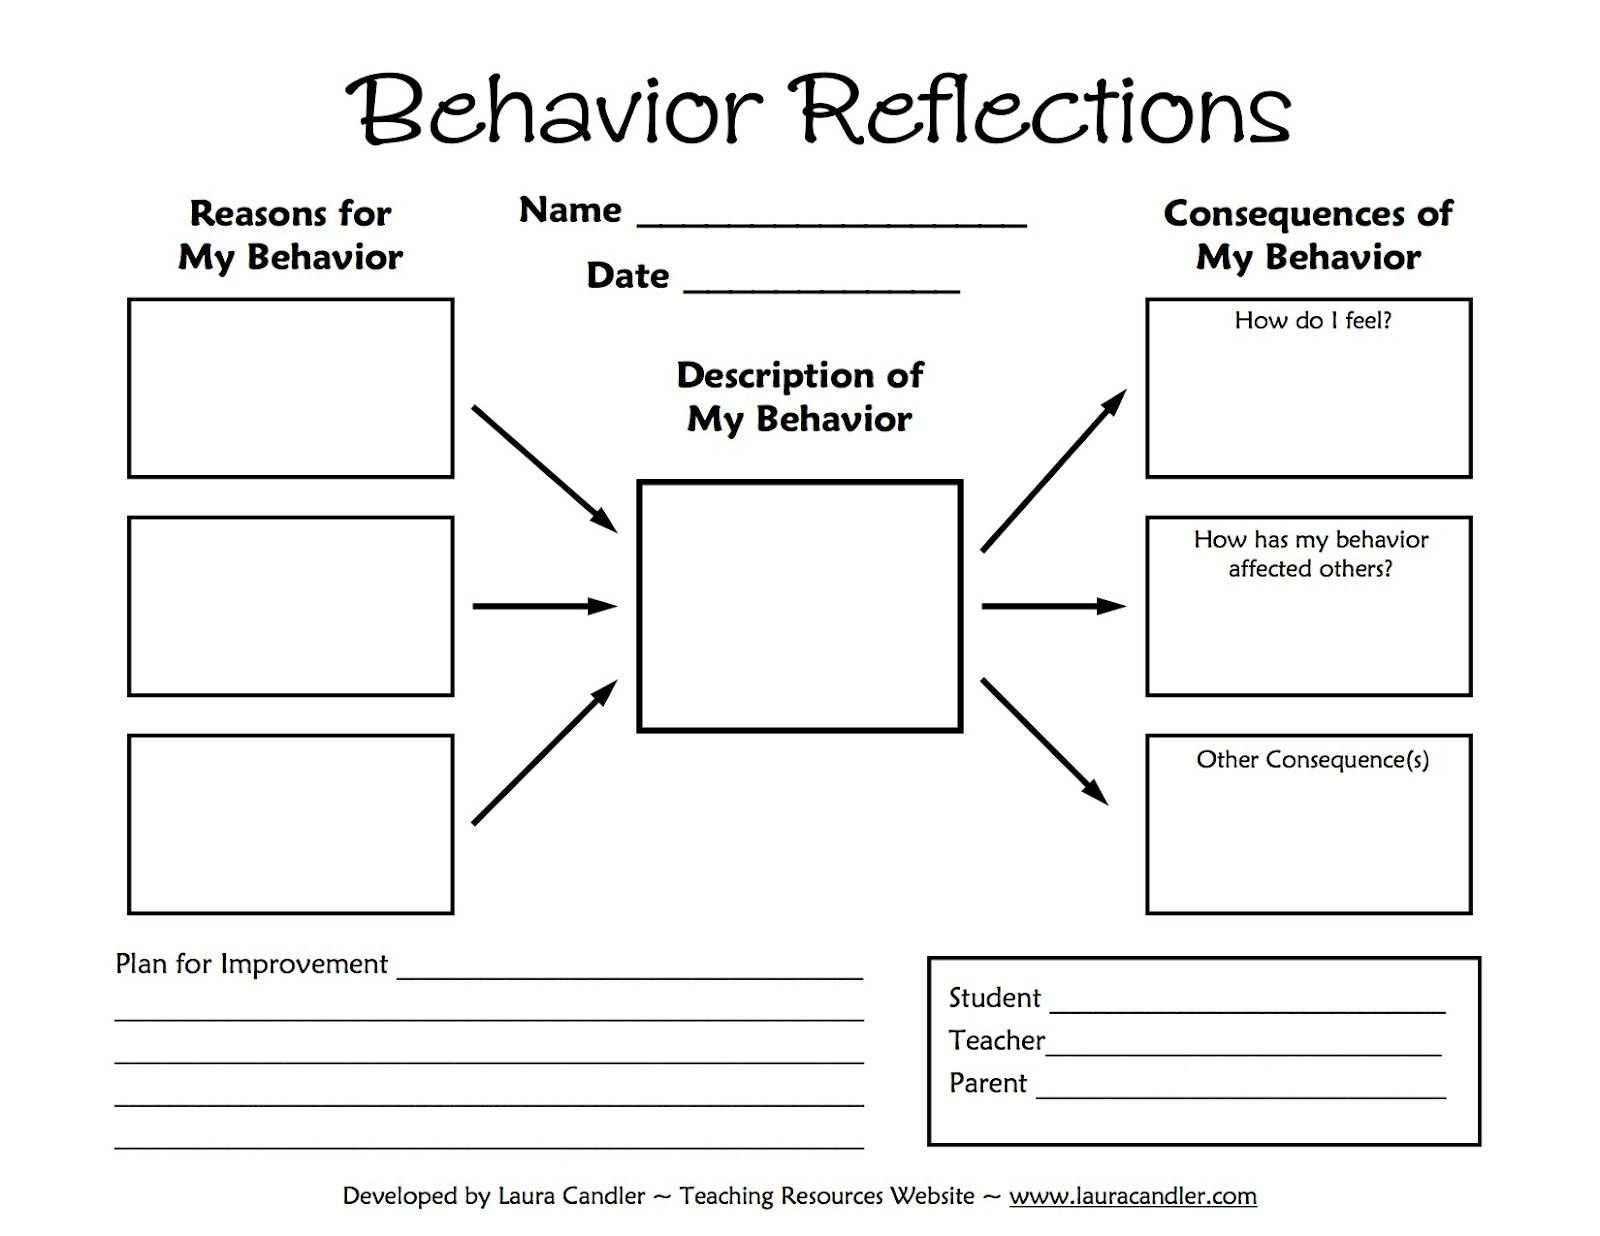 Tween Teaching: Behavior Reflections Sheet | School | Behavior | Middle School Printable Worksheets